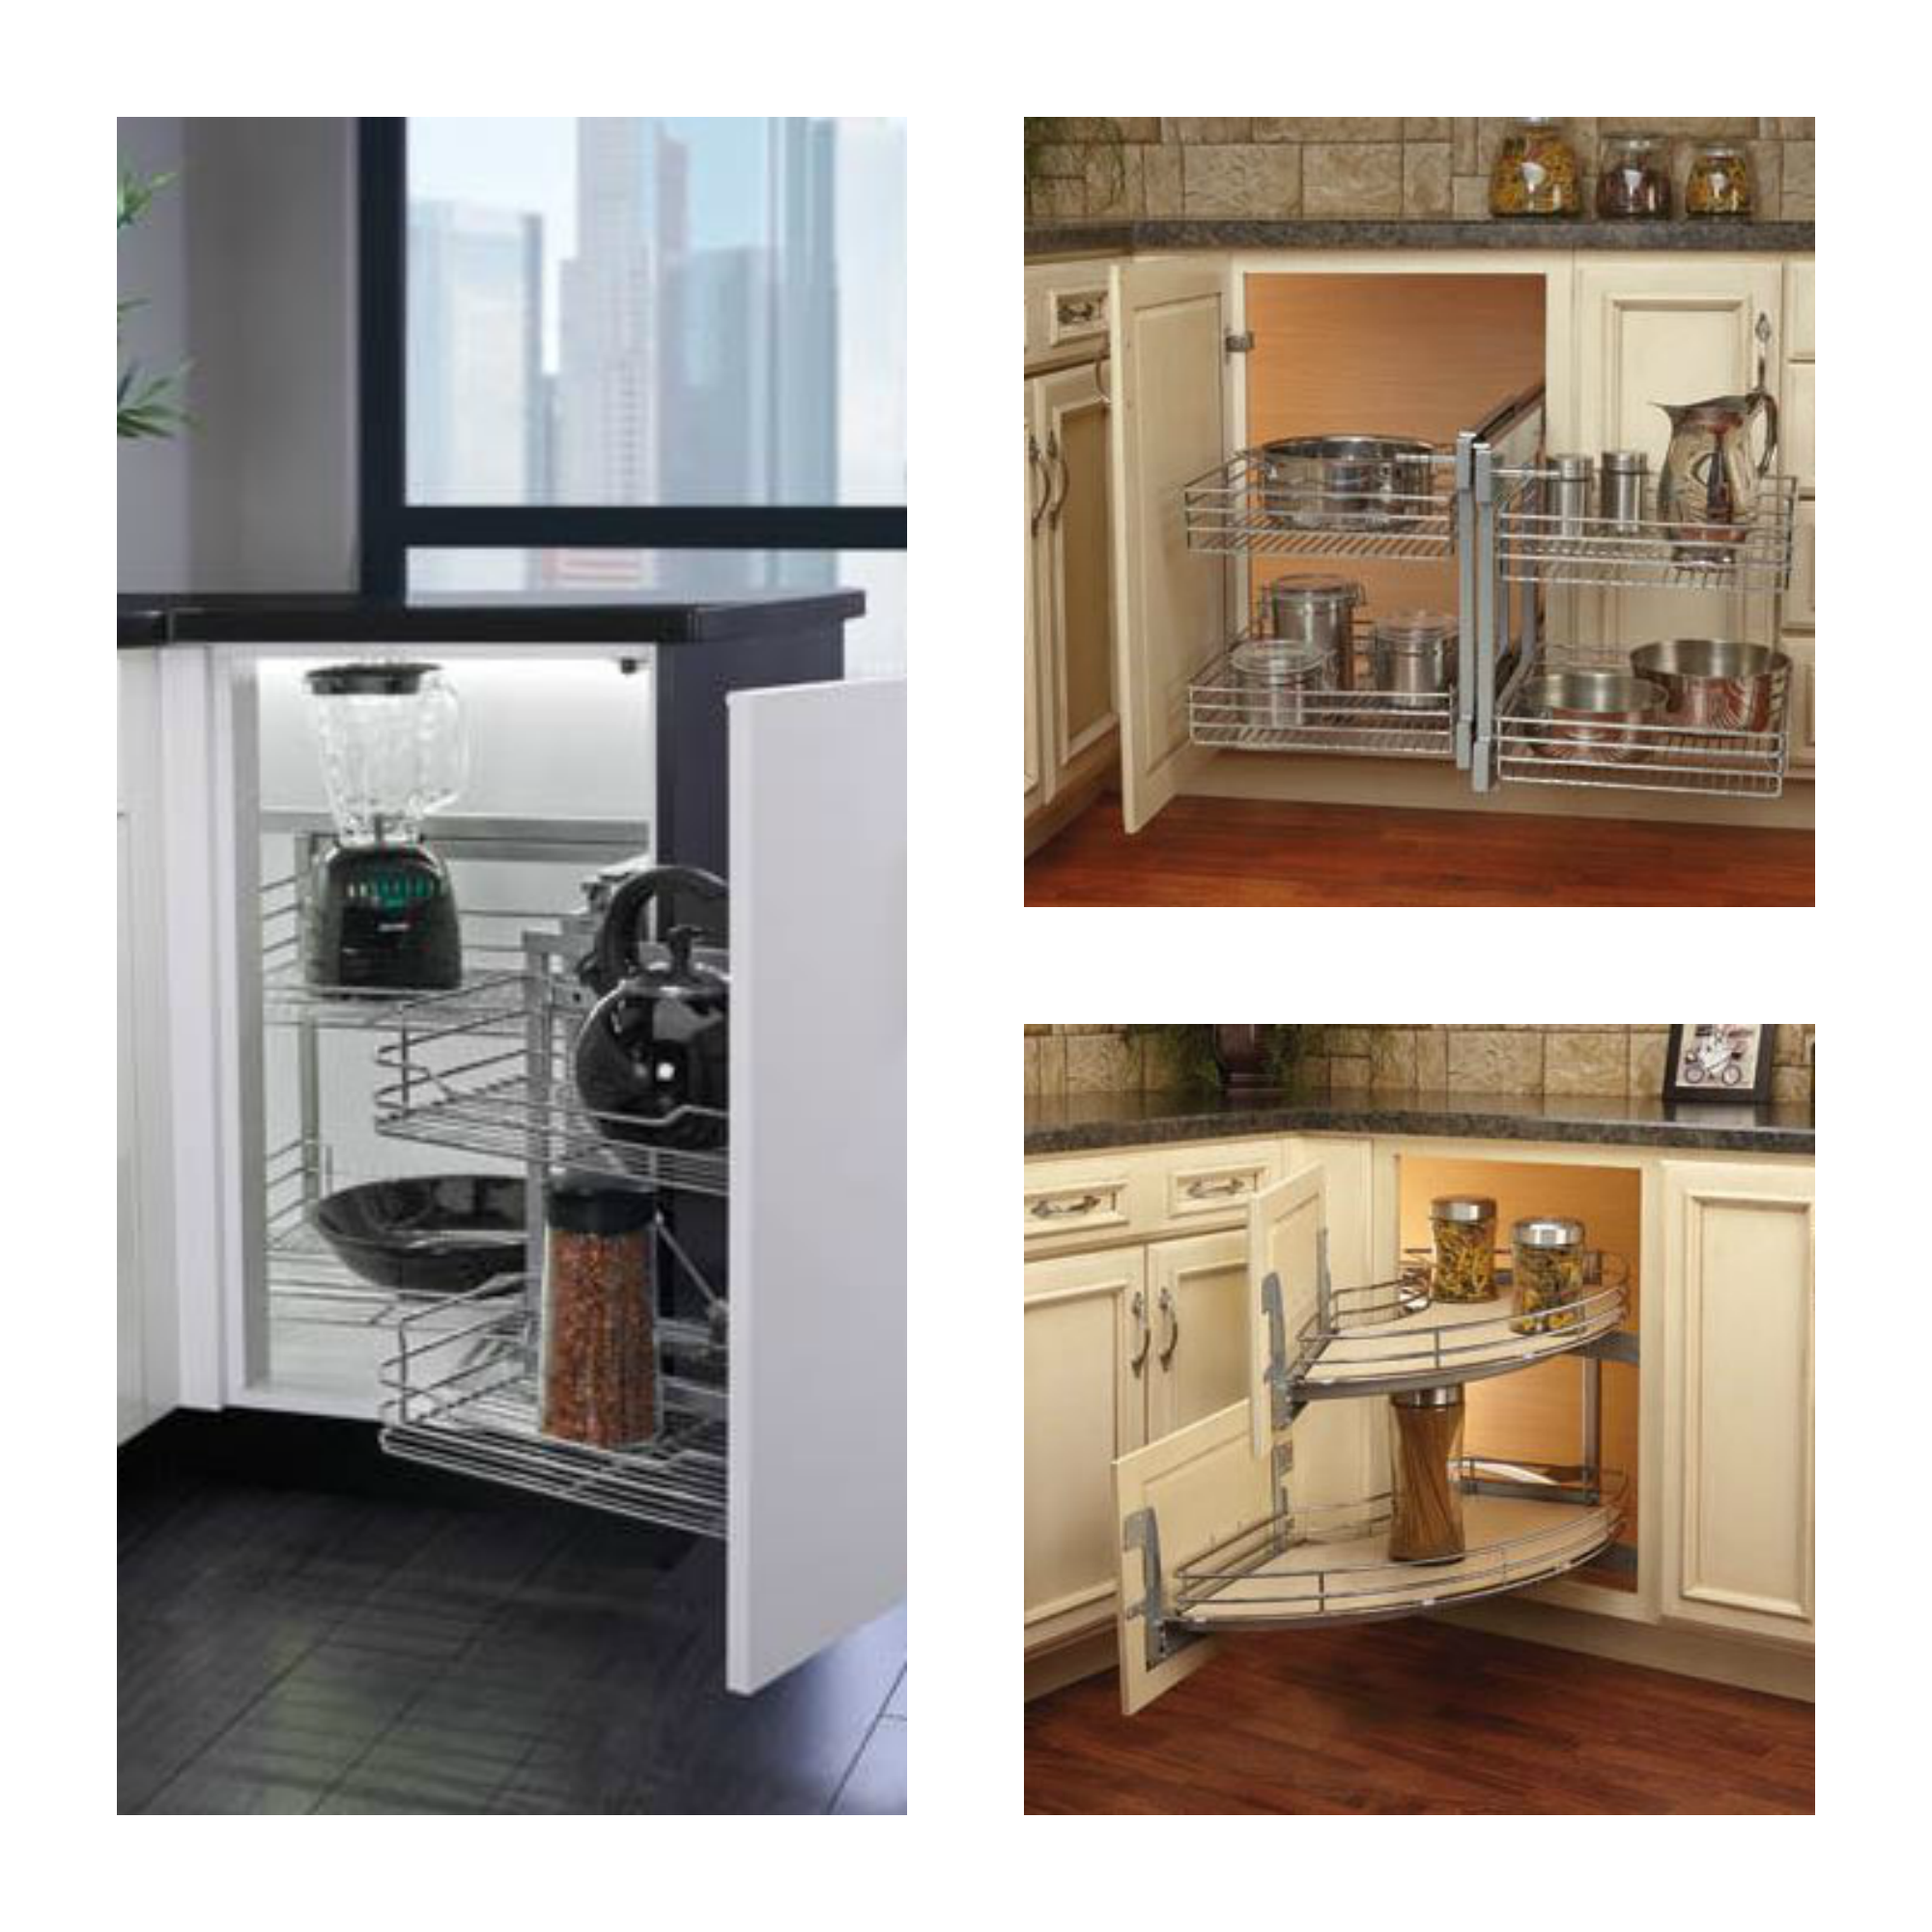 Kitchen Cabinets Accessories: Cabinet Accessories For Small Kitchens